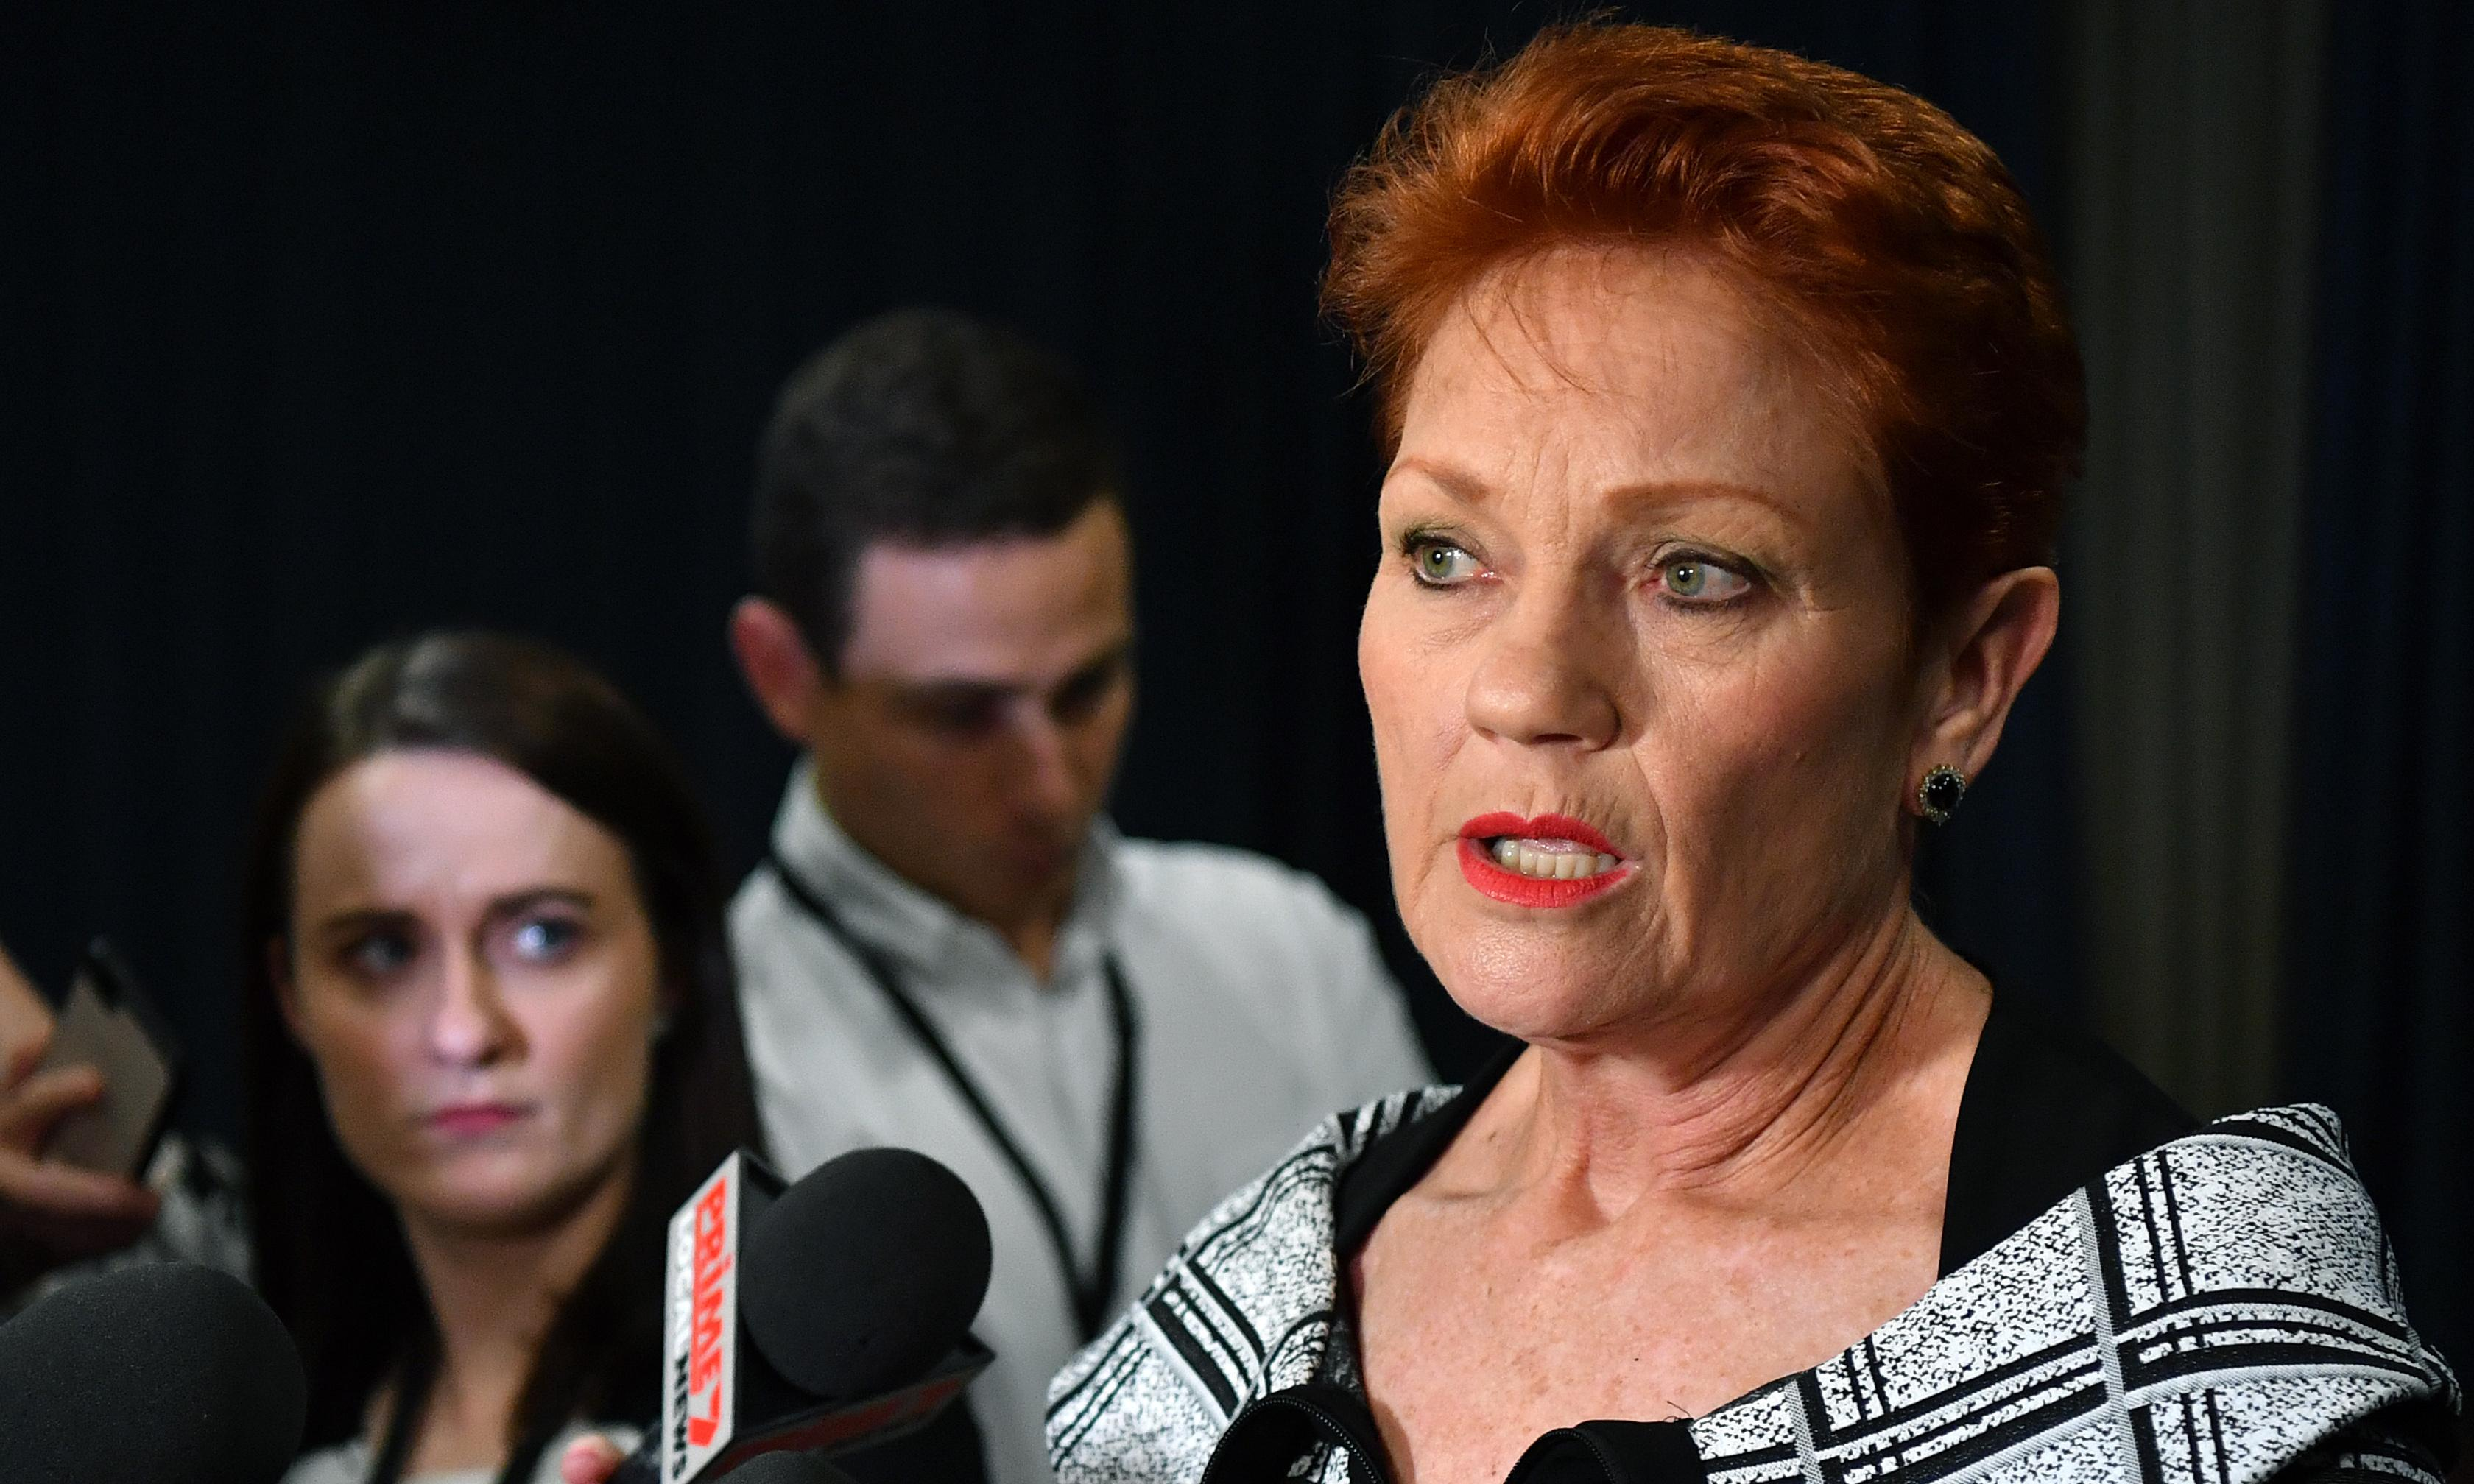 Pauline Hanson claims credit as Morrison announces inquiry into family law system